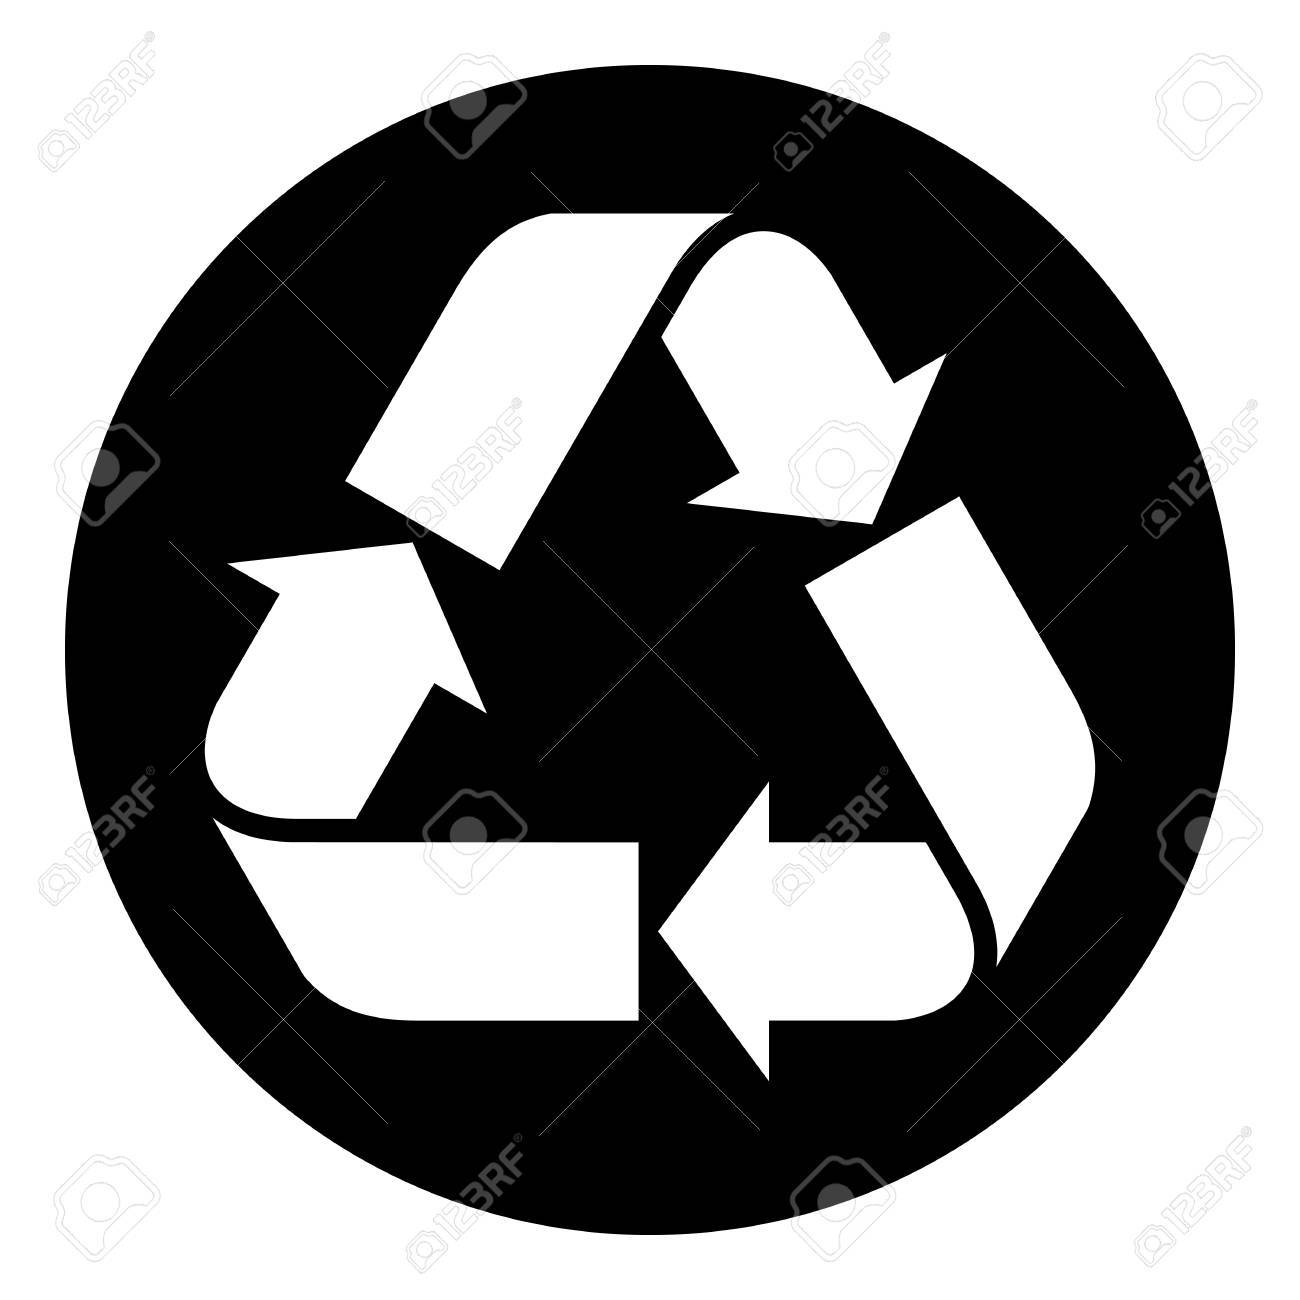 Recycled paper symbol Stock Vector - 18758548